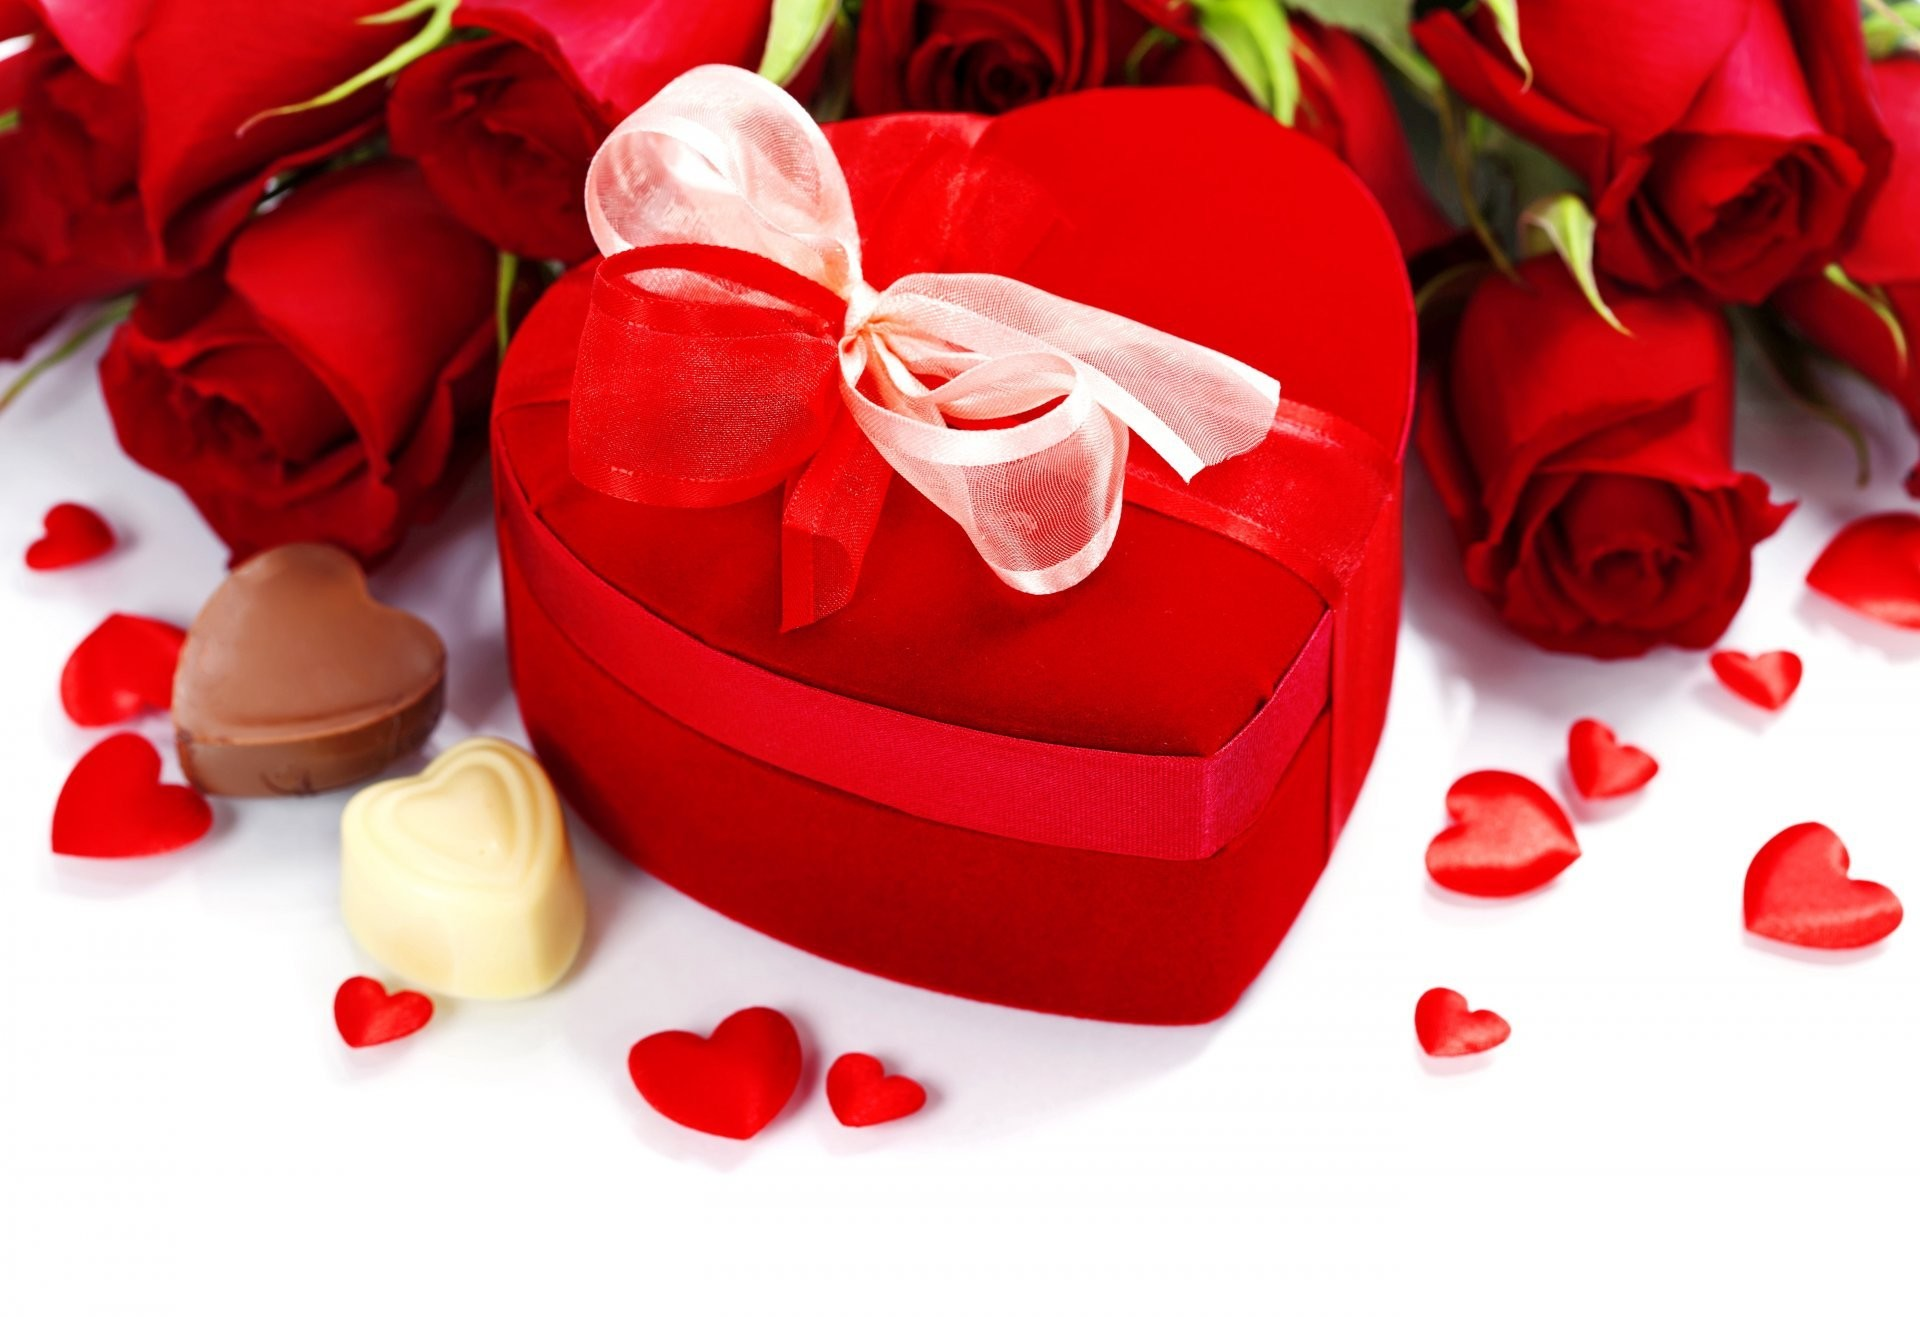 1920x1317 valentine's day love heart romantic roses roses bouquet heart present candy  chocolate